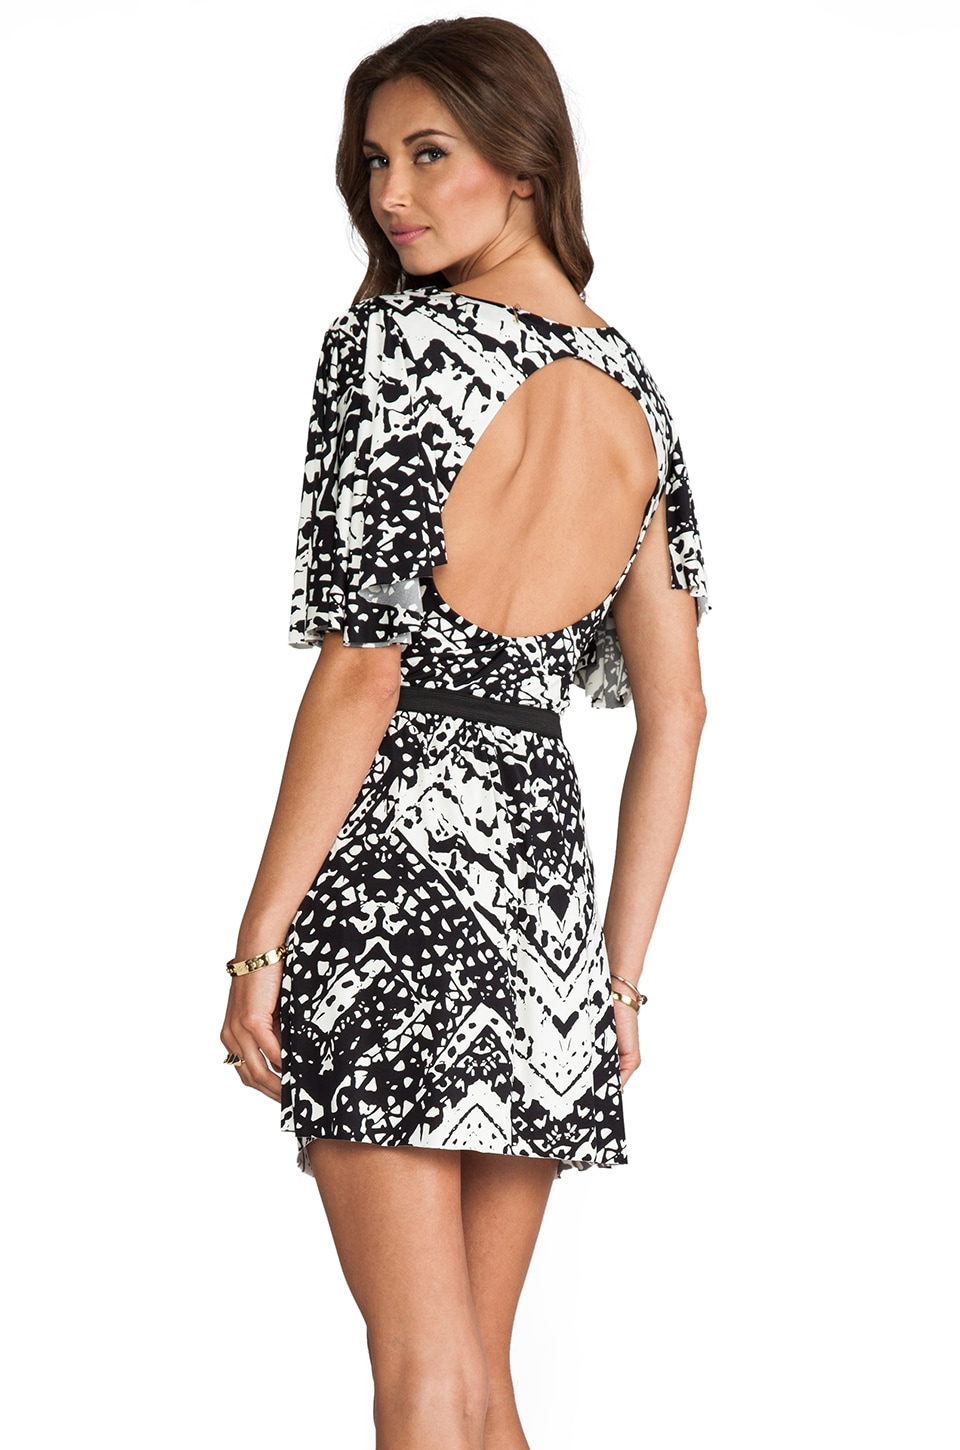 T-Bags LosAngeles Circle Cut Out Dress in Black/White Chevron